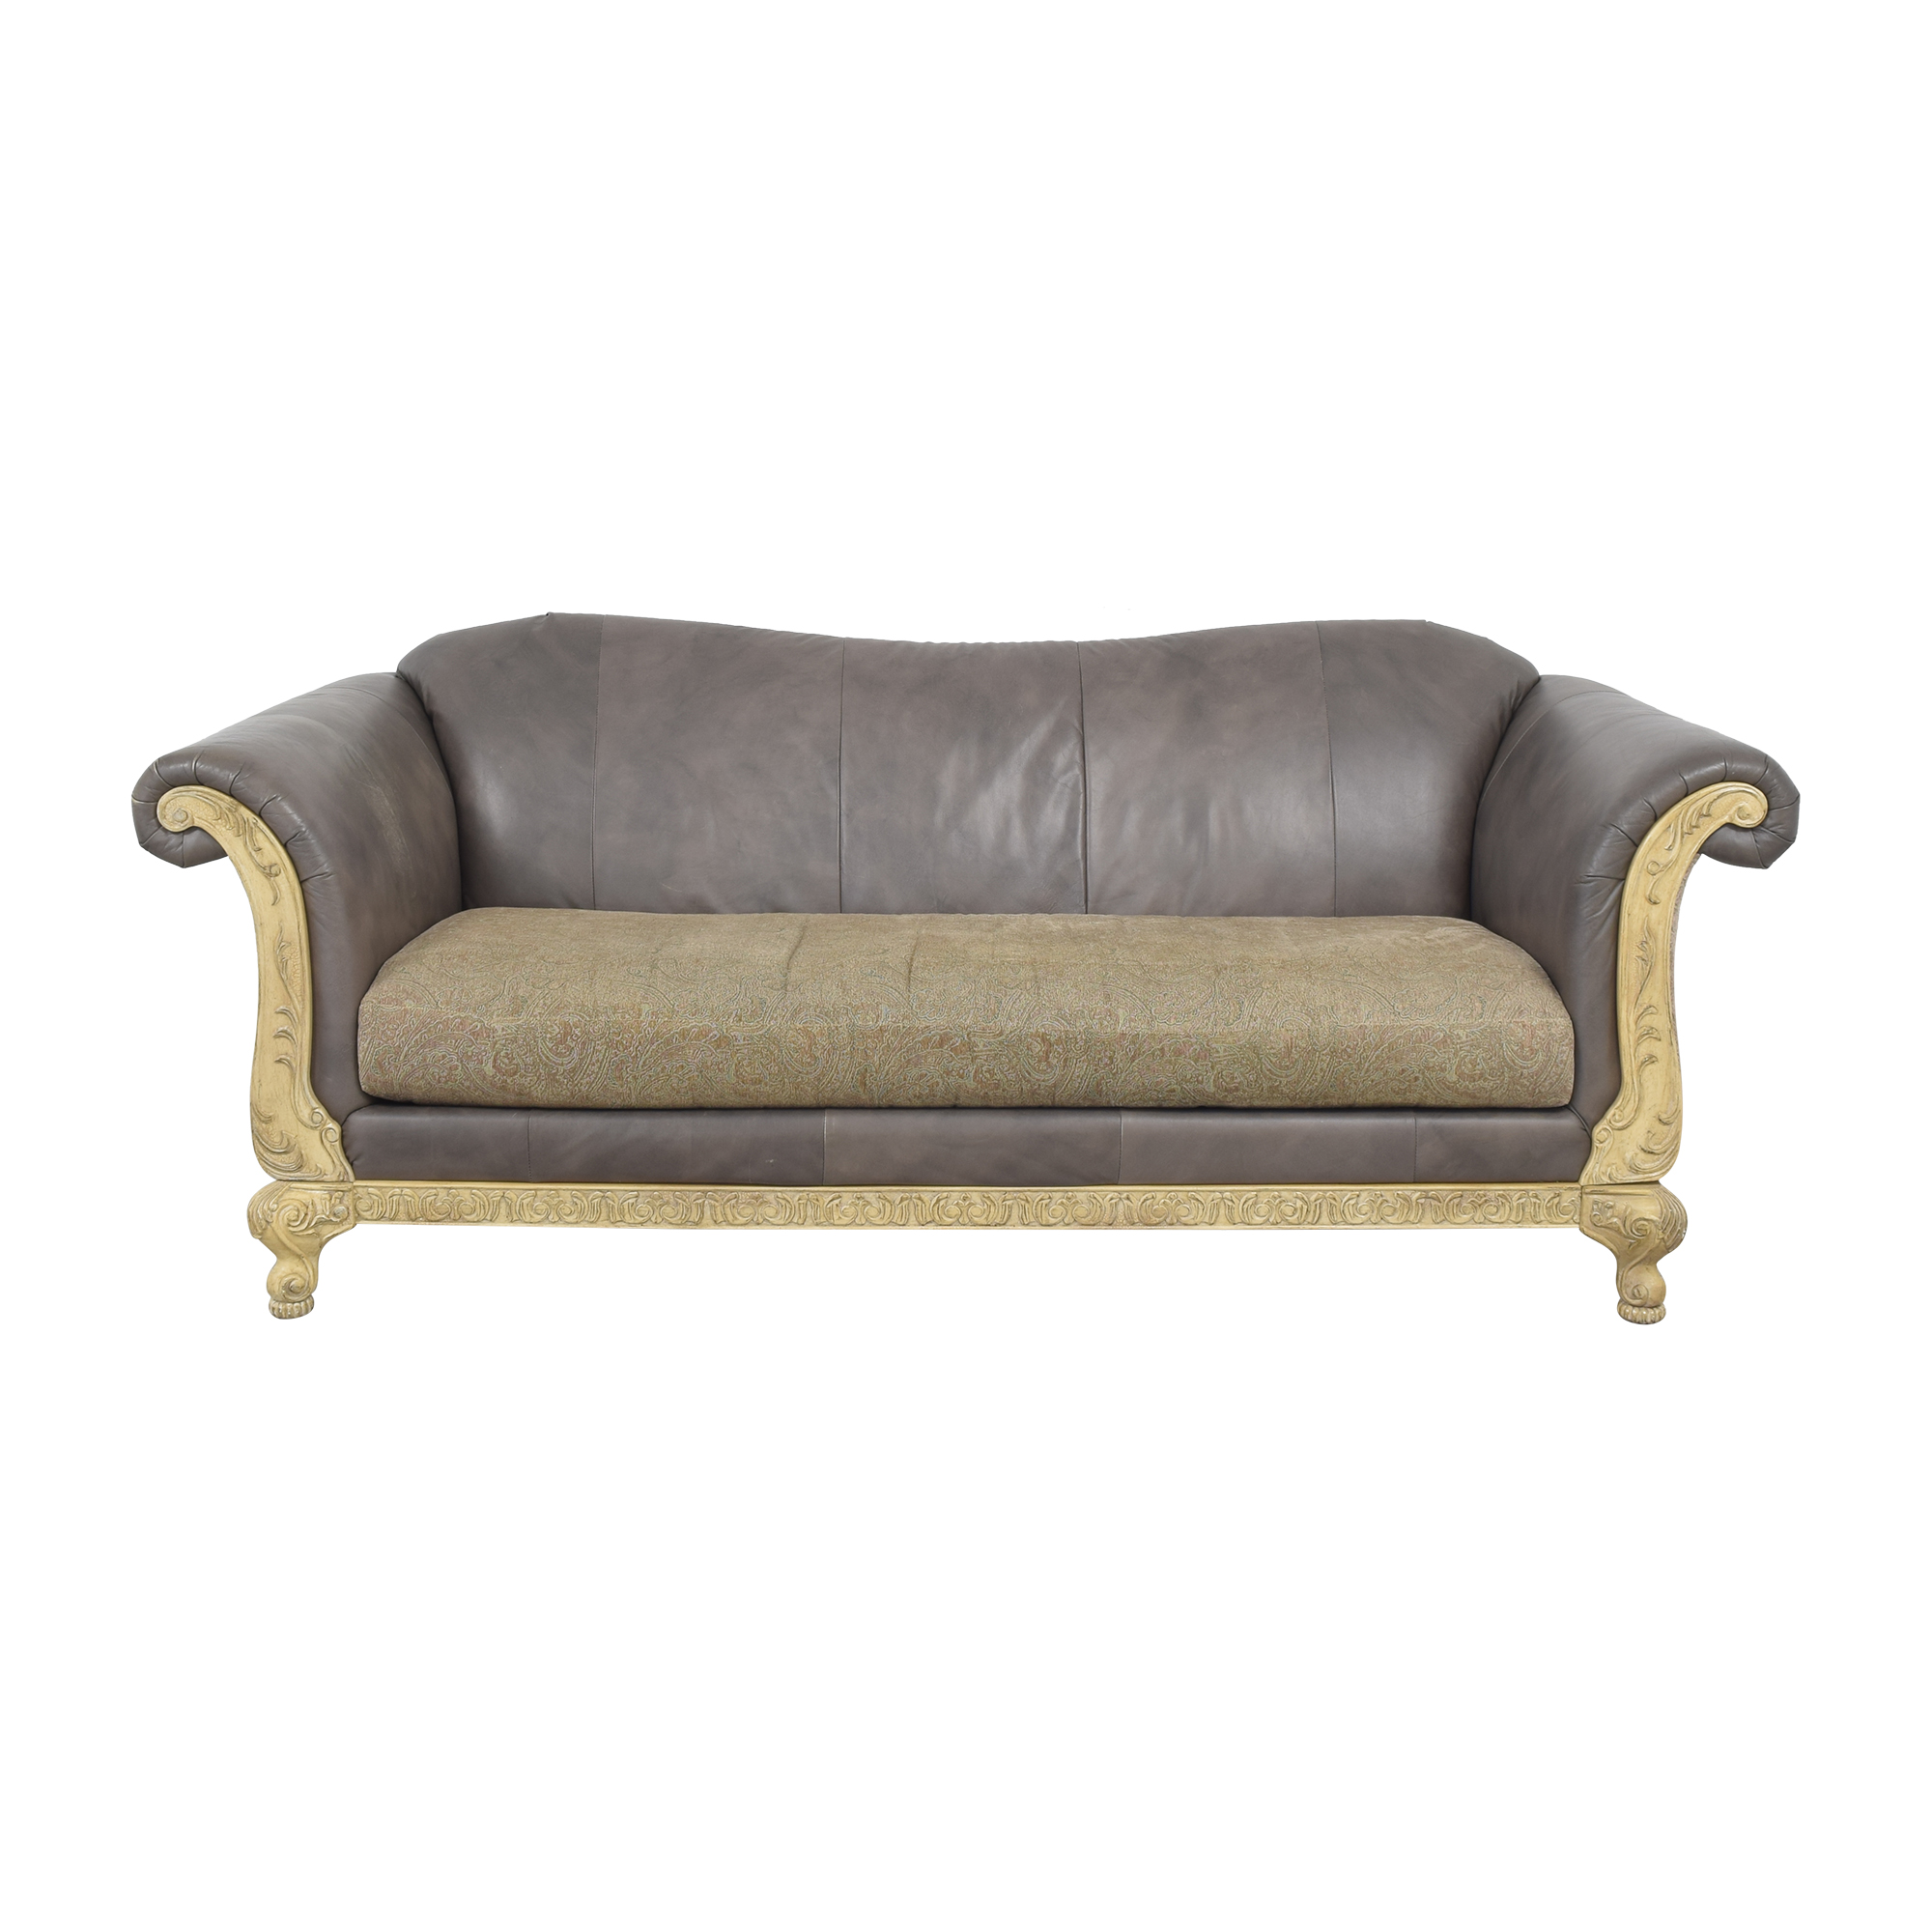 Schnadig Schnadig Decorative Bench Cushion Sofa for sale